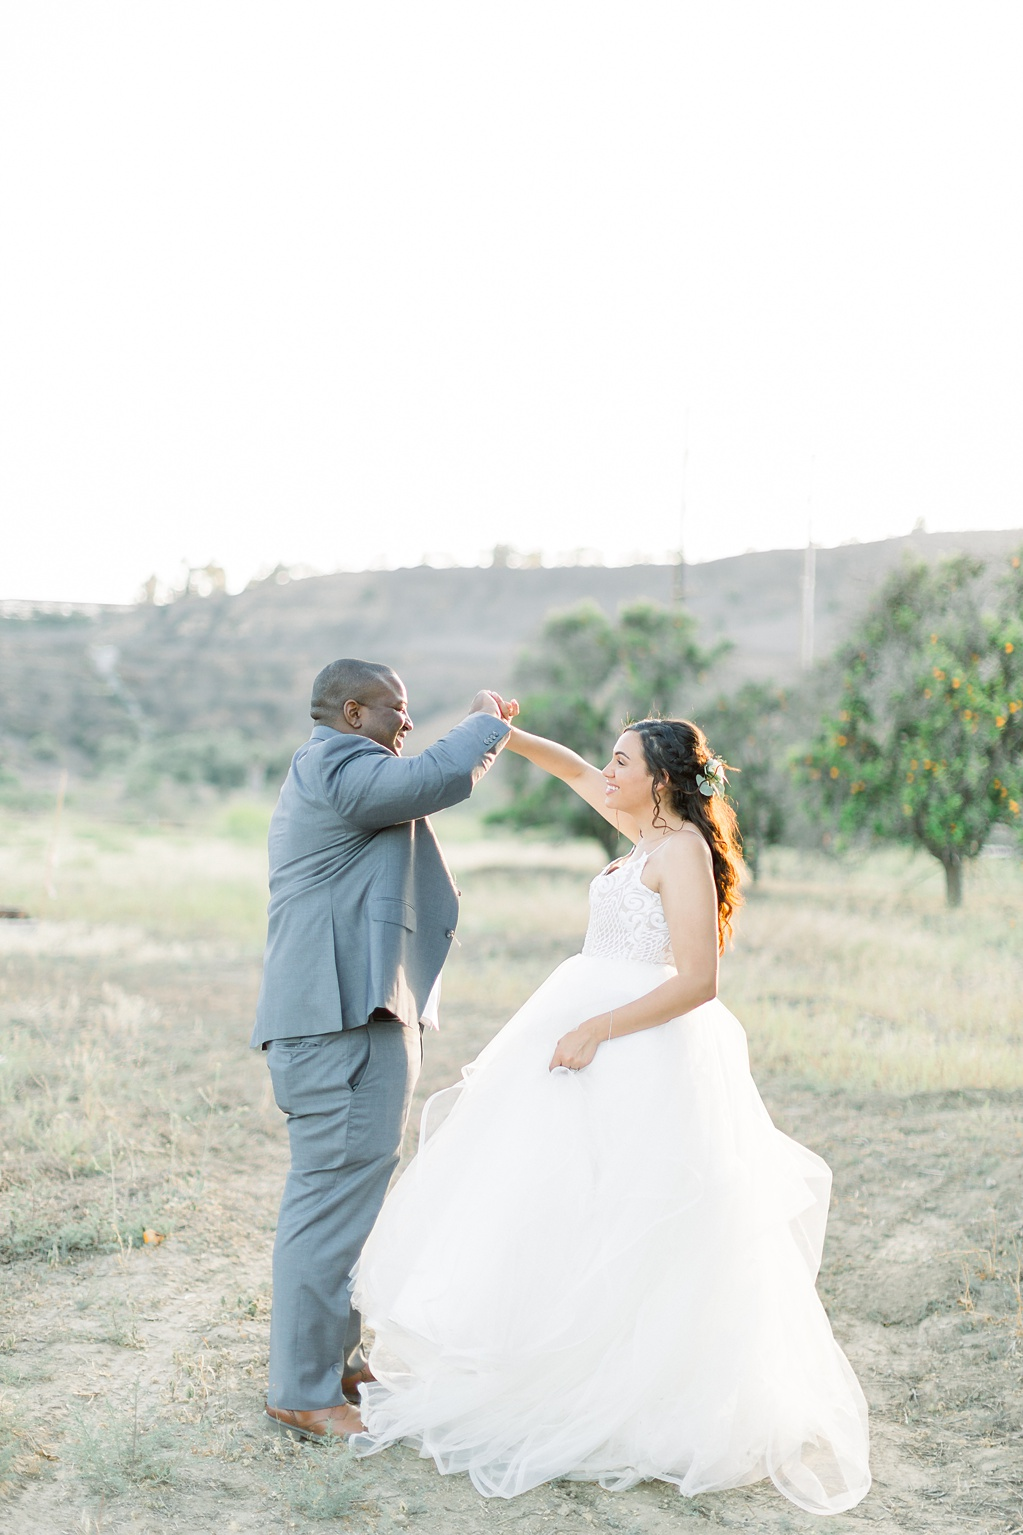 An Organic Floral Inspired Summer Wedding in the open fields of Hamilton Oaks, San Juan Capistrano by Wedding Photographer Madison Ellis (47)